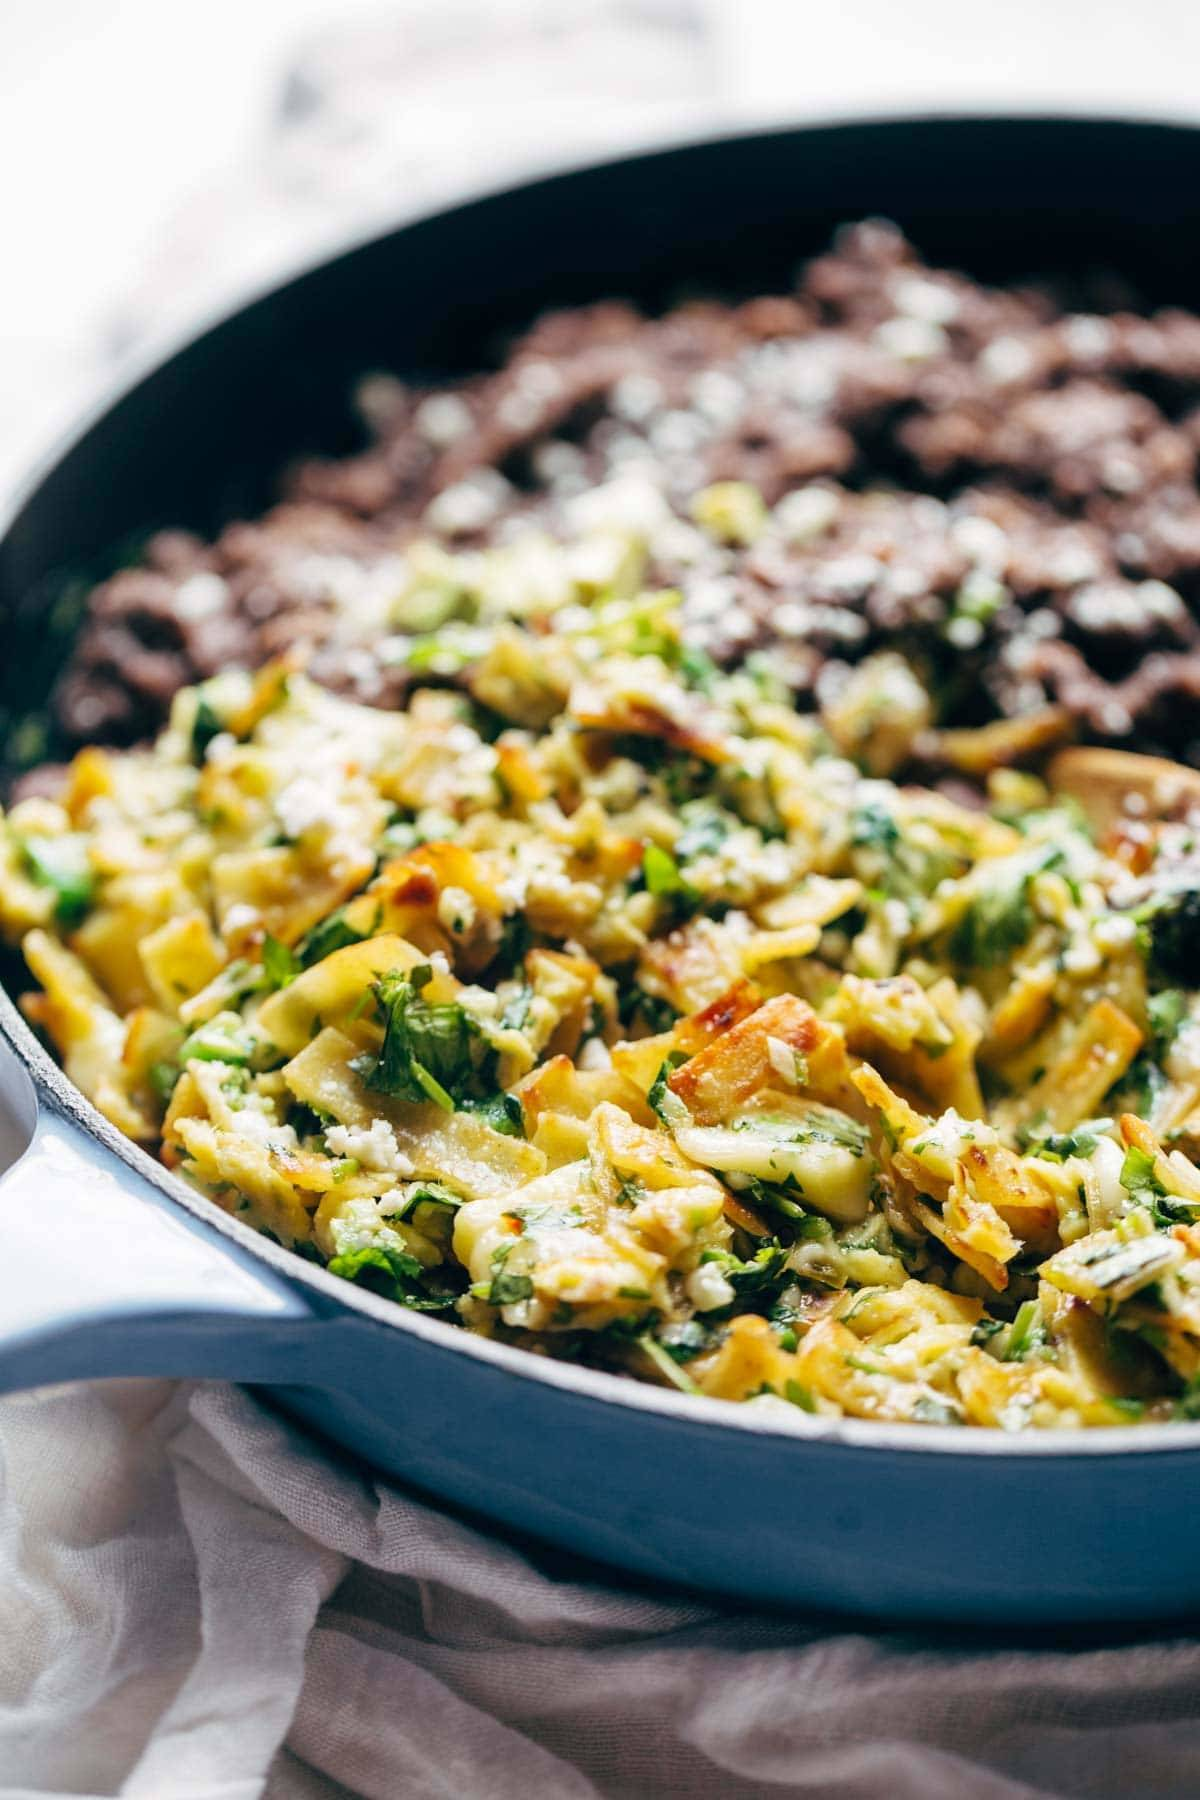 Migas - eggs scrambled with crispy tortillas, garlic, jalapeño, and melted cheese served with black beans and avocado. Quick, easy, and SO DELICIOUS. Breakfast, lunch, dinner, or brunch! | pinchofyum.com